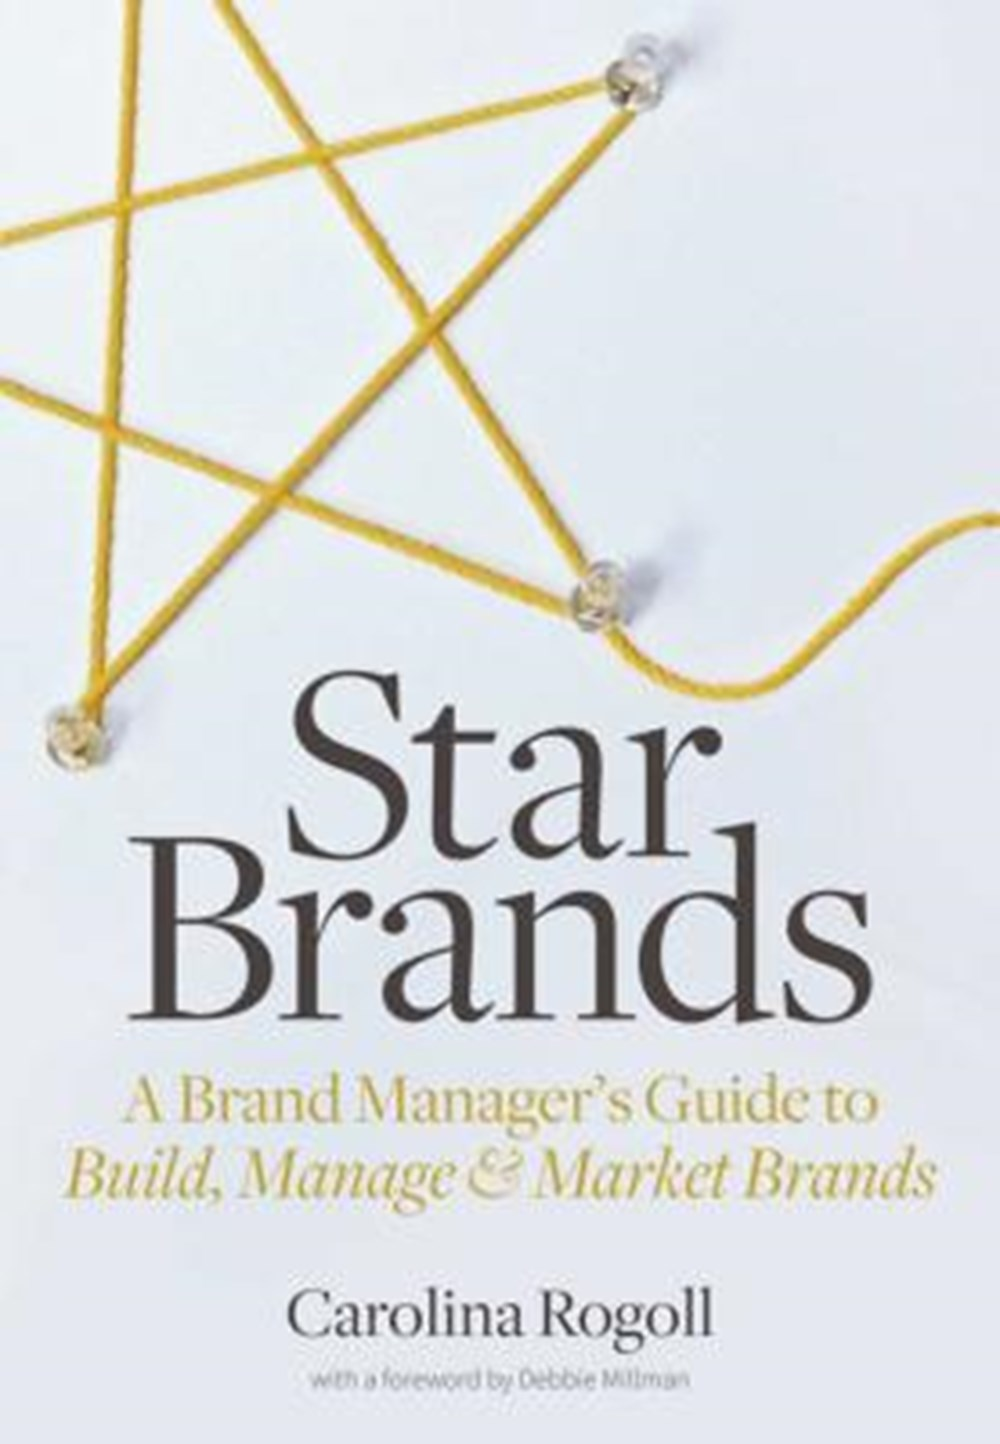 Star Brands A Brand Manager's Guide to Build, Manage & Market Brands